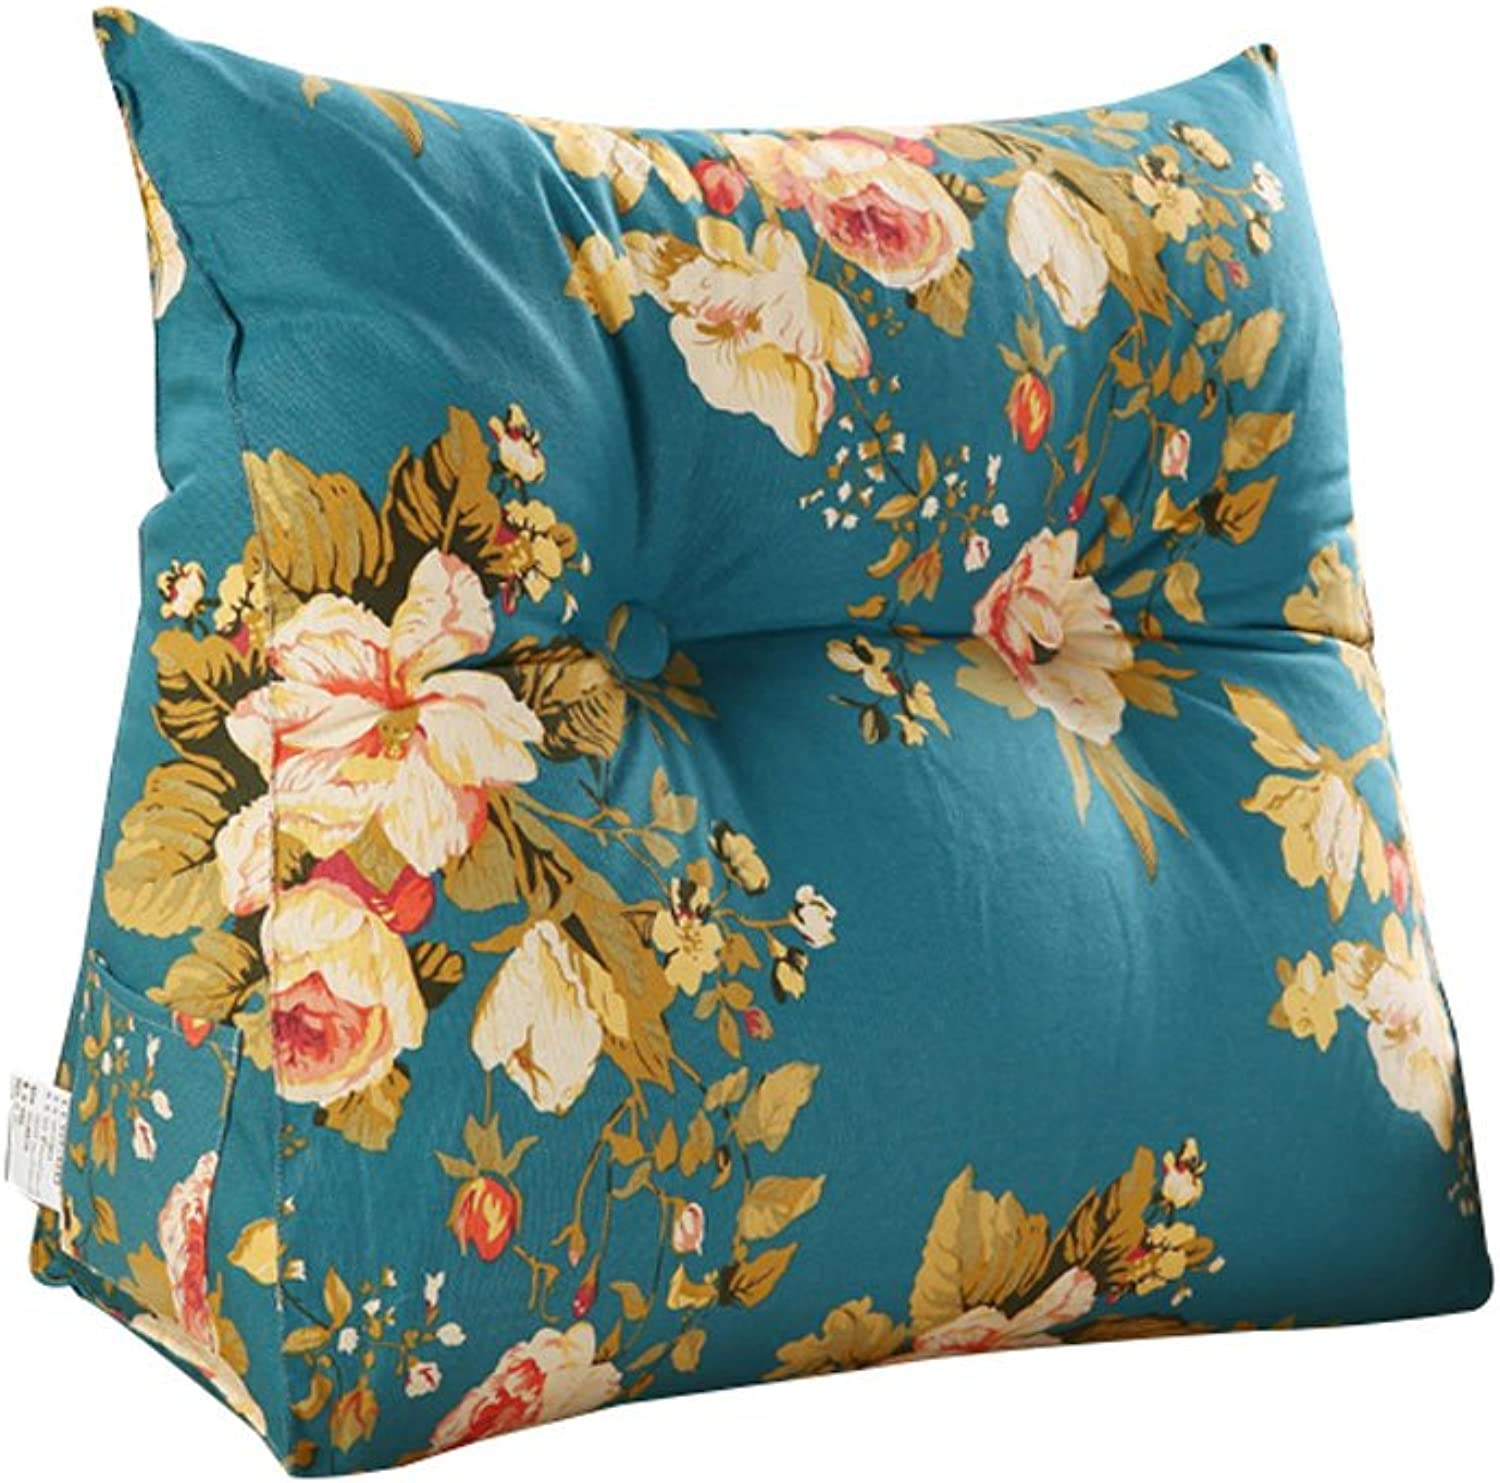 DDSS Bed cushion Printing Bedside Triangular Cushion Large Back Bed Tatami Sofa Cushions Waist Pillow Washable  -  (color   A, Size   60cm20cm50cm)